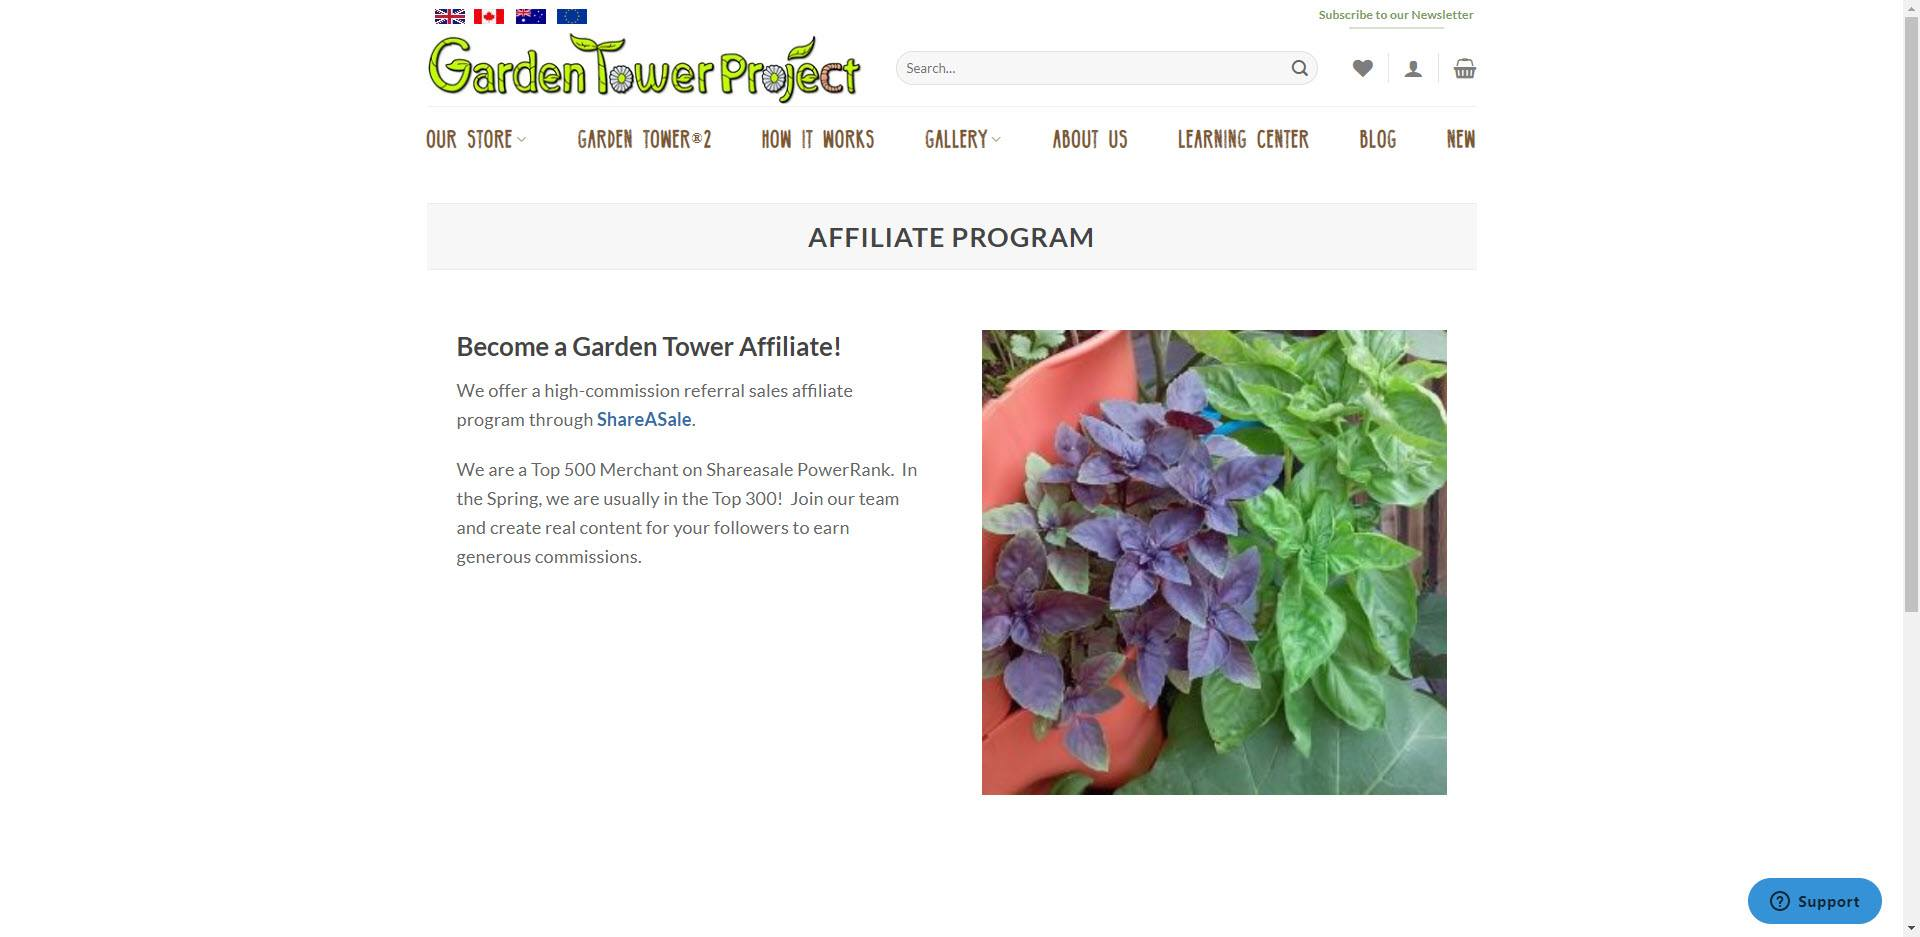 Gardening Affiliate Programs - Garden Tower Project Affiliate